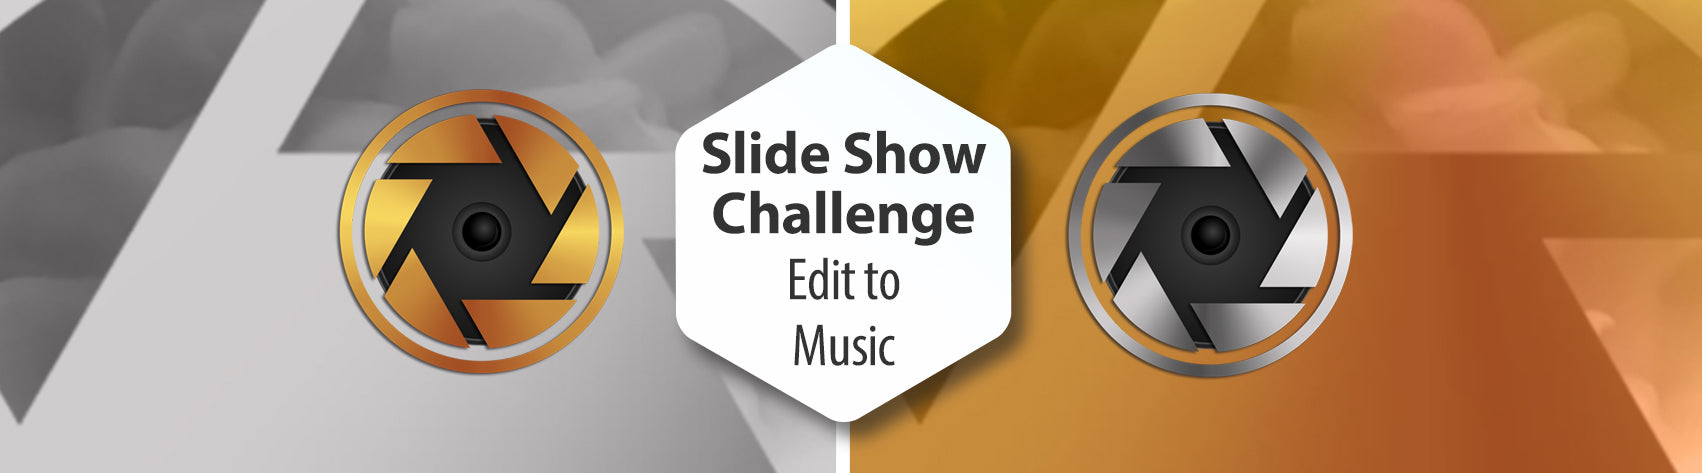 Slide Show Challenge - Edit to Music